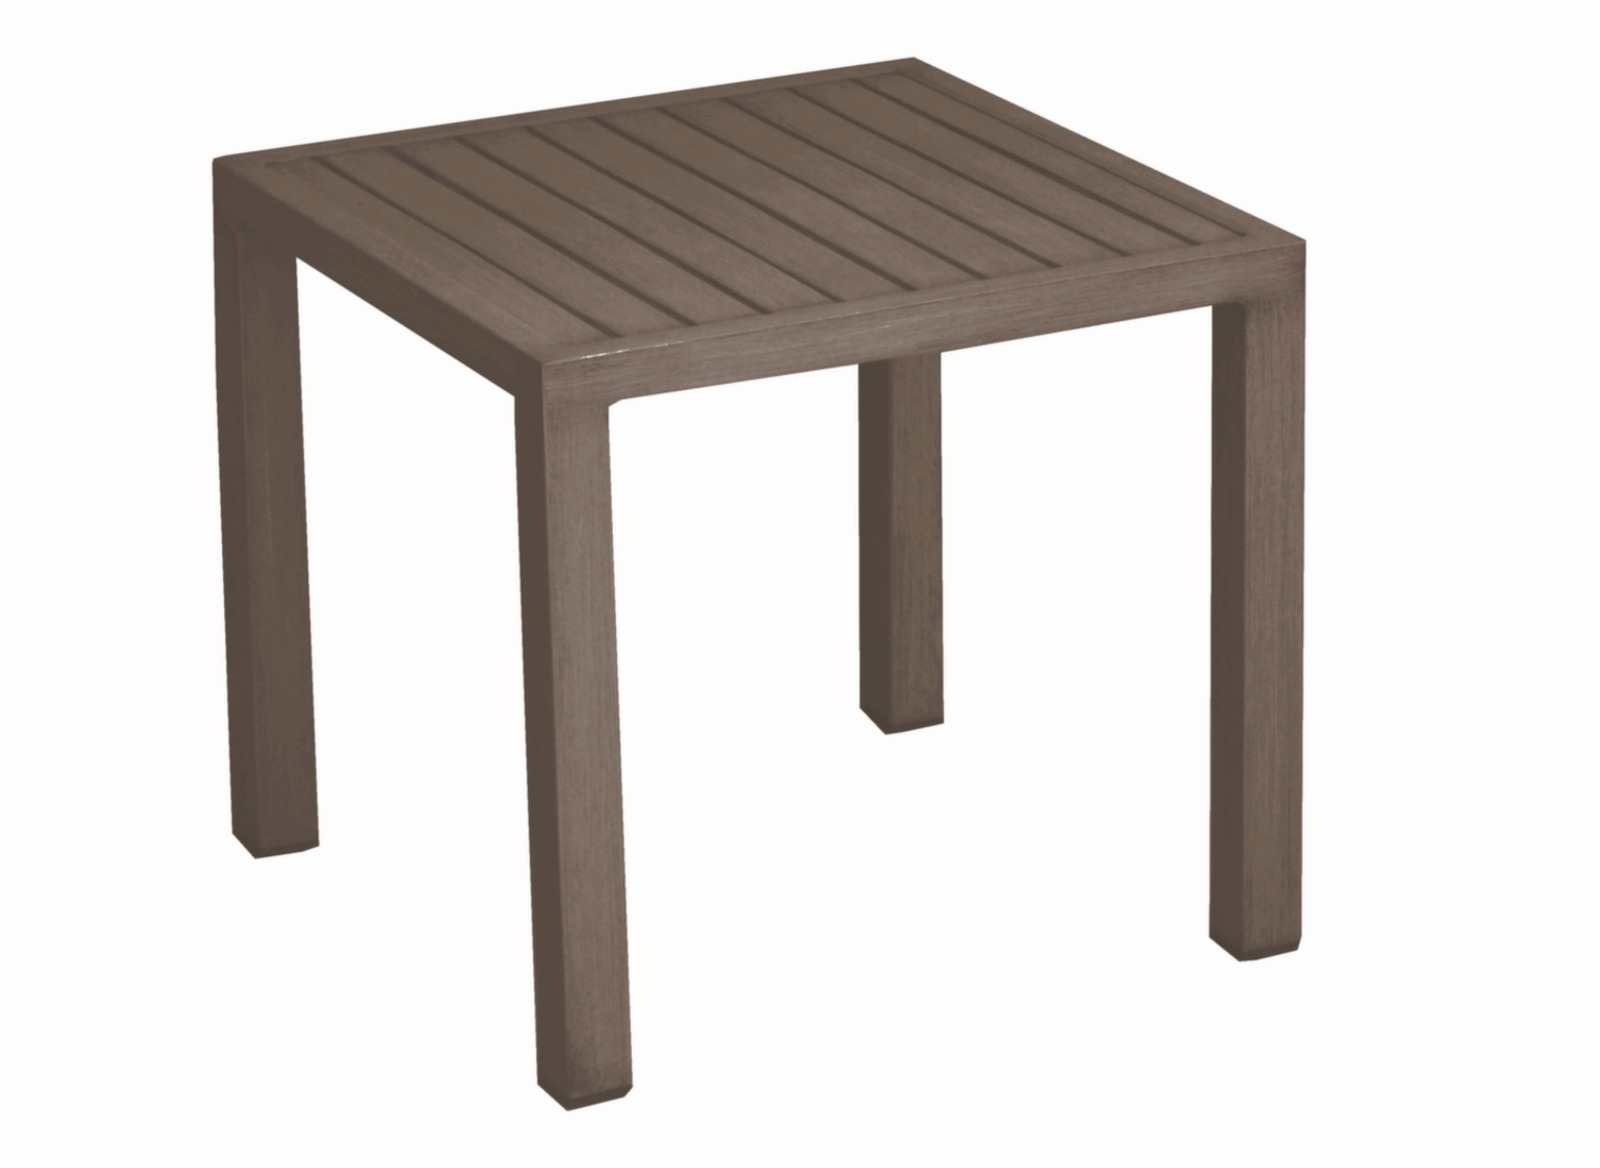 Table basse de jardin carr e 40 cm lou tables basses - Table basse de jardin ...